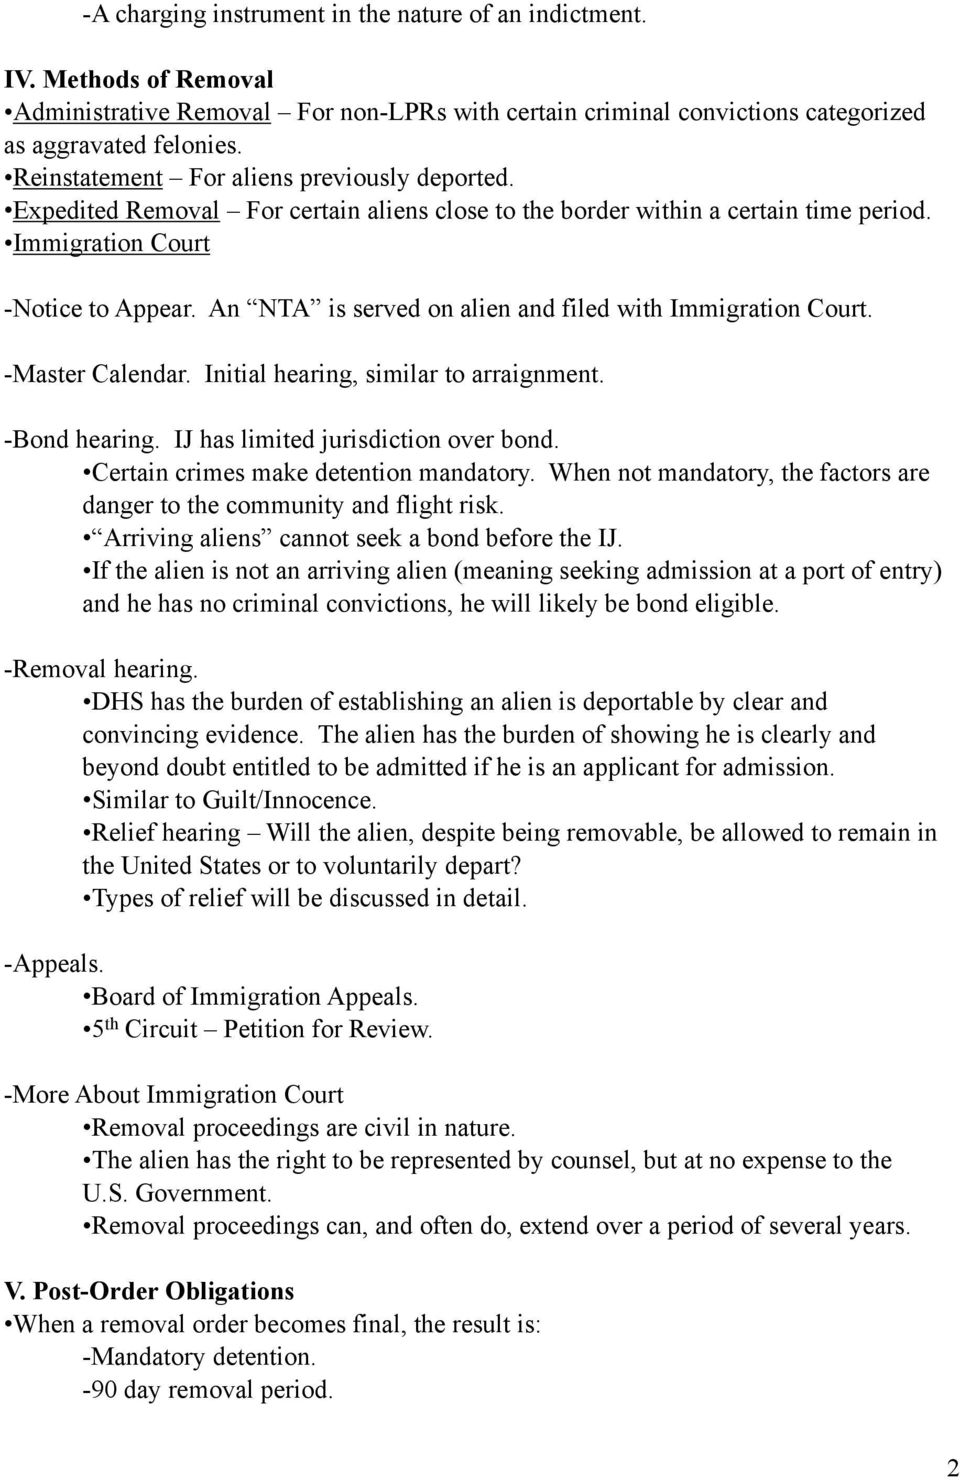 An NTA is served on alien and filed with Immigration Court. -Master Calendar. Initial hearing, similar to arraignment. -Bond hearing. IJ has limited jurisdiction over bond.